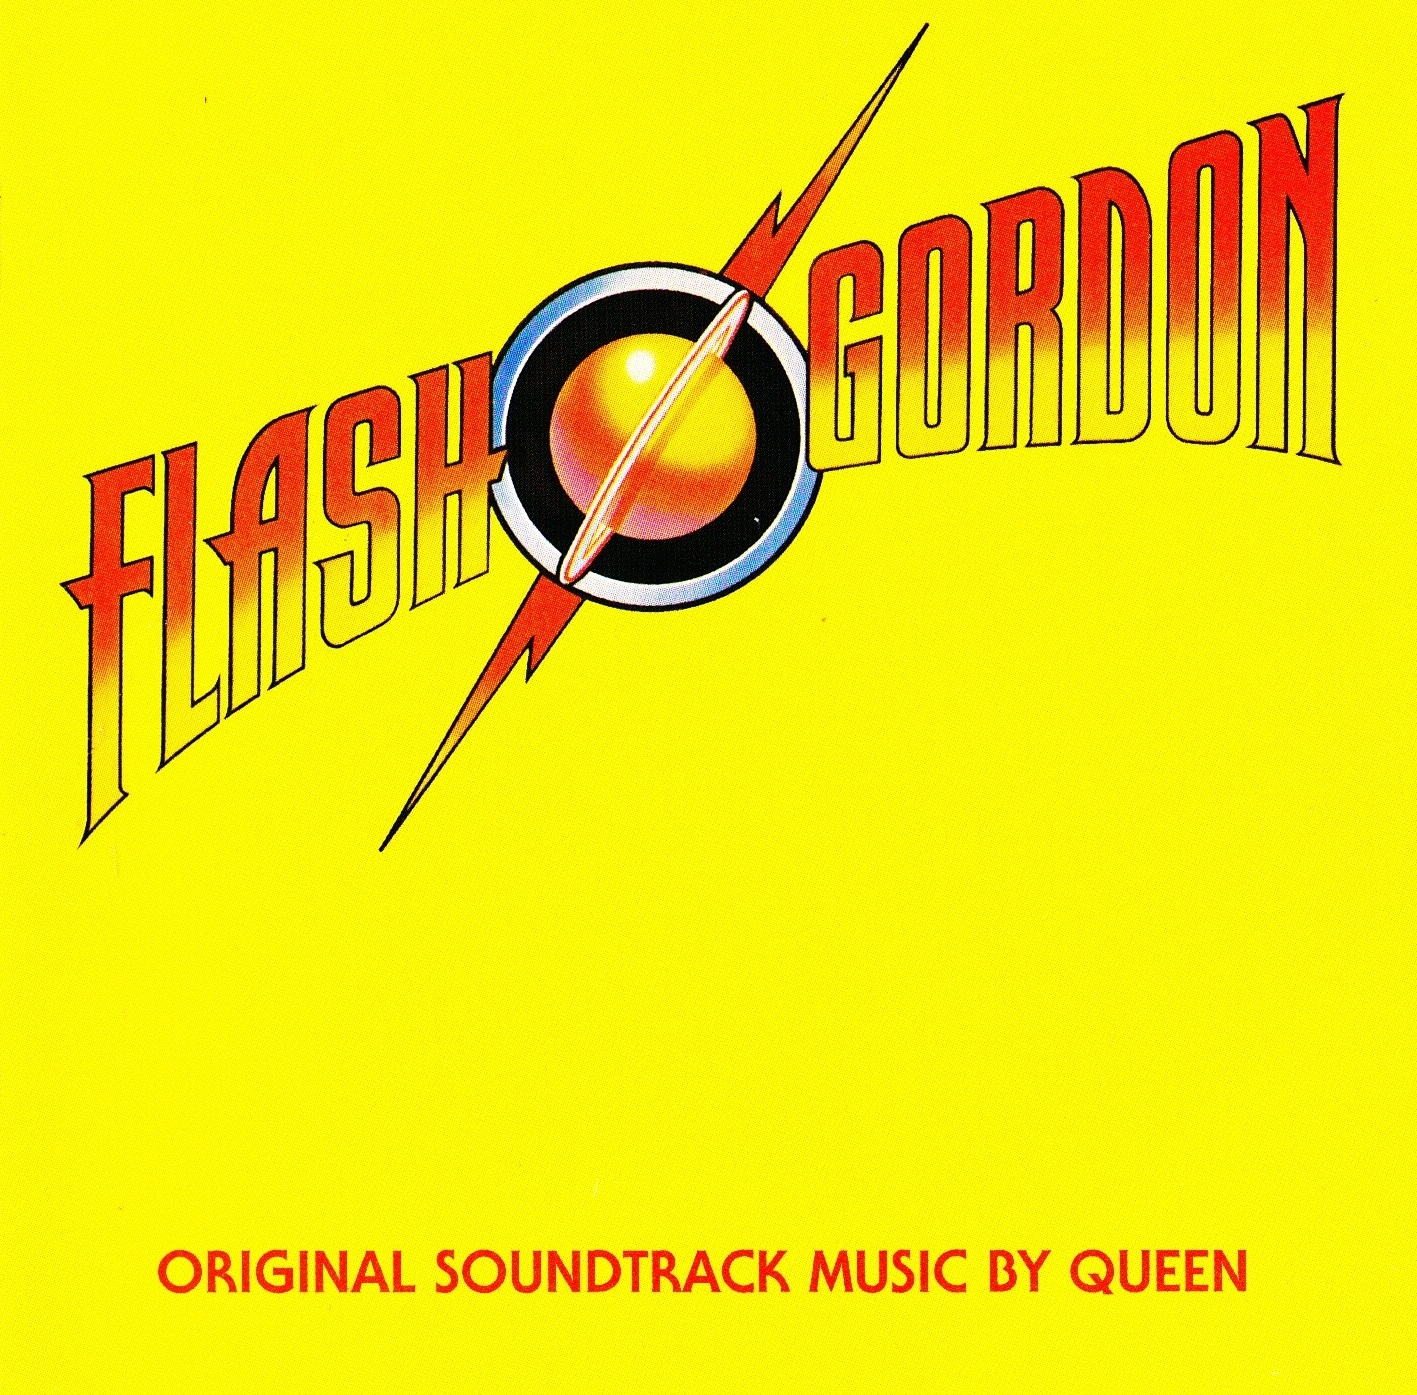 Queen — Flash Gordon (1980)